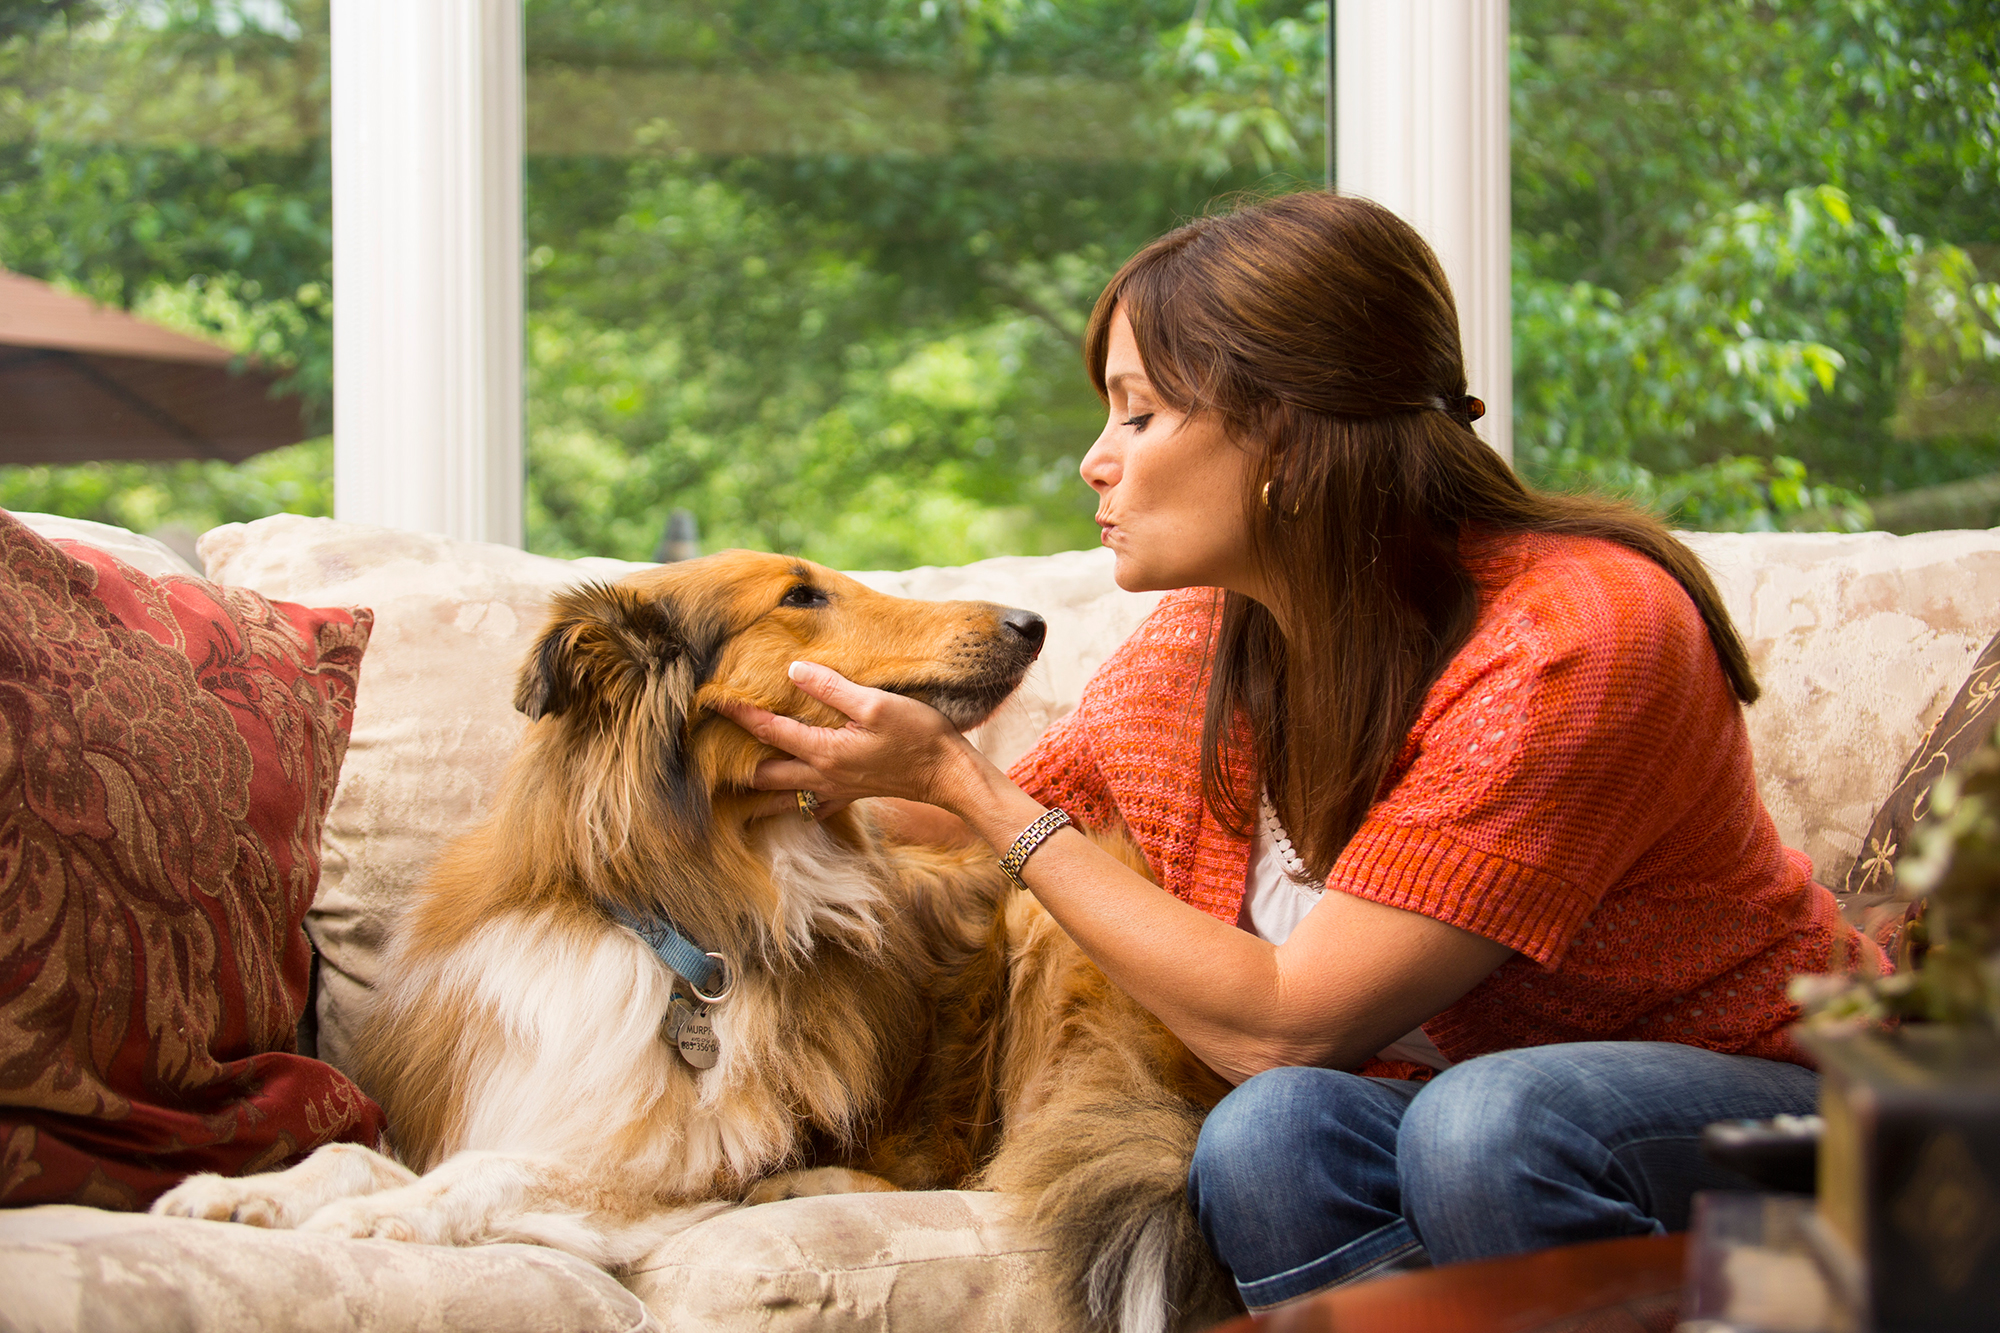 54 percent of dog owners aren't aware that physical changes in dogs can actually be related to cognitive issues.